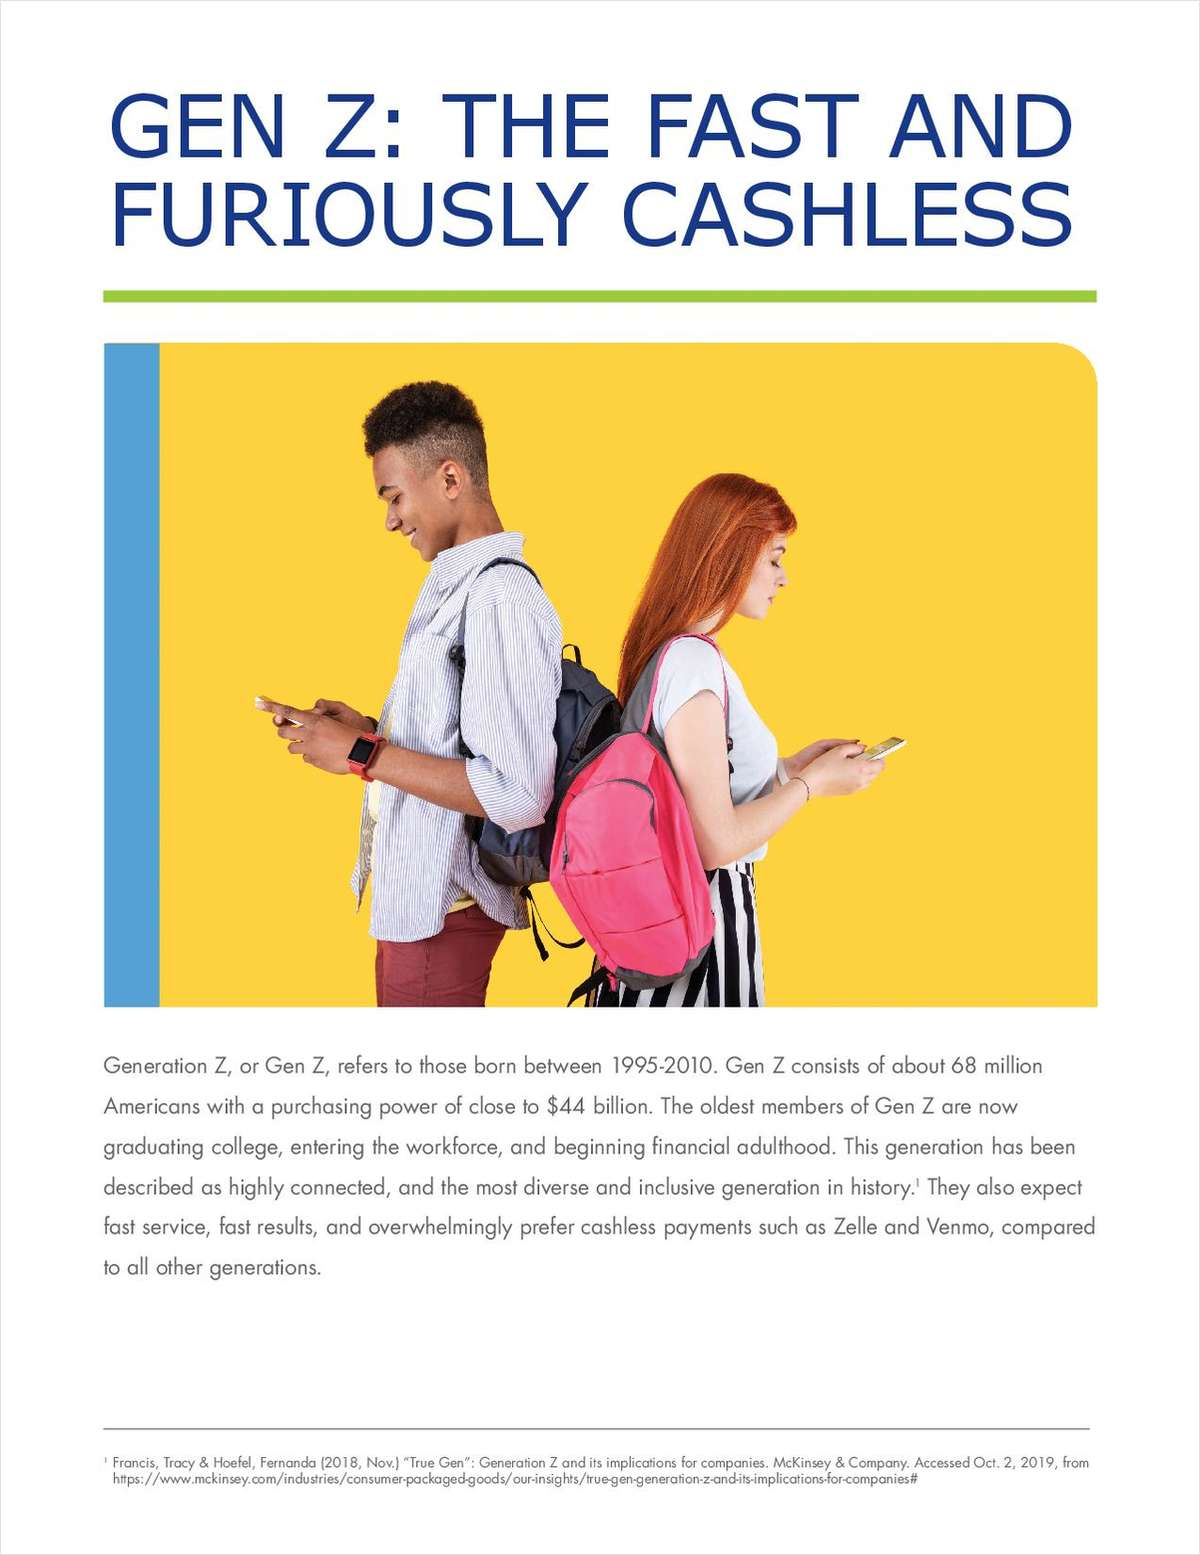 Gen Z: The Fast and Furiously Cashless